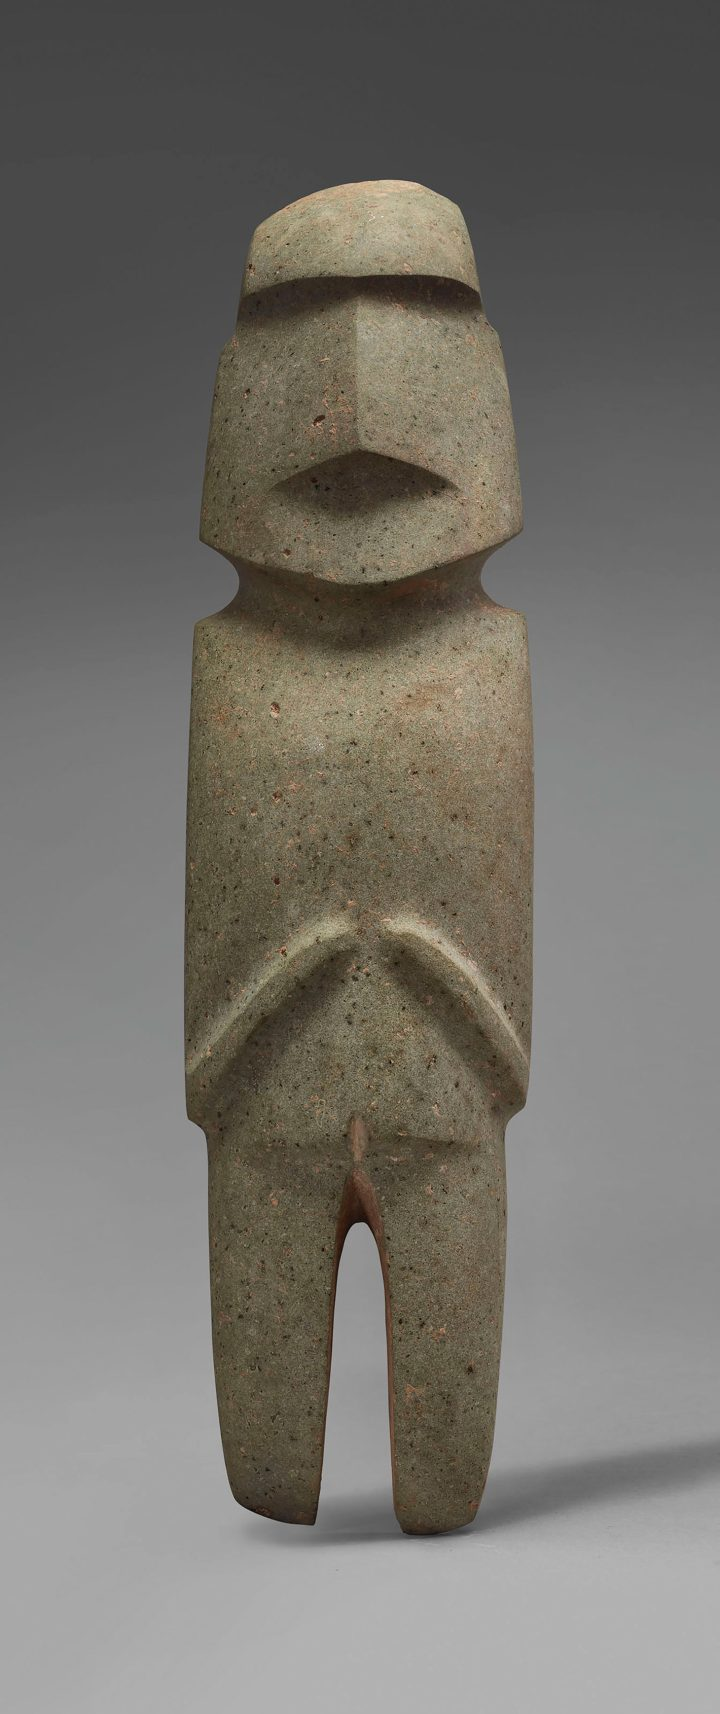 Important personnage debout Mezcala, type M10, preclassive recent, green gray andesite, 13 inches high (image courtesy Christie's)